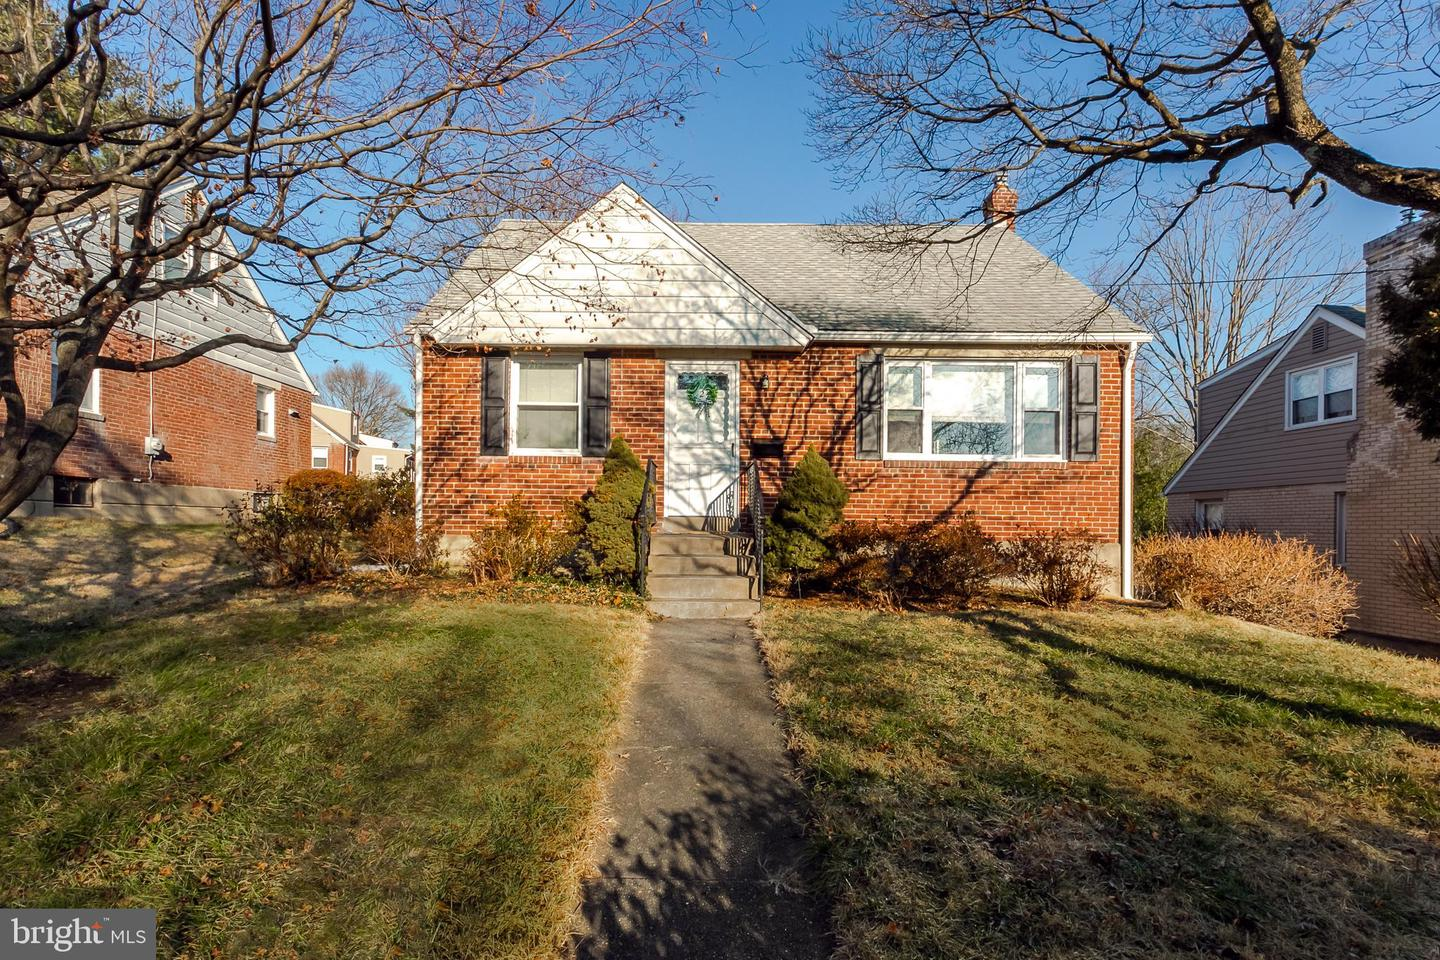 524 N Manoa Road Havertown, PA 19083